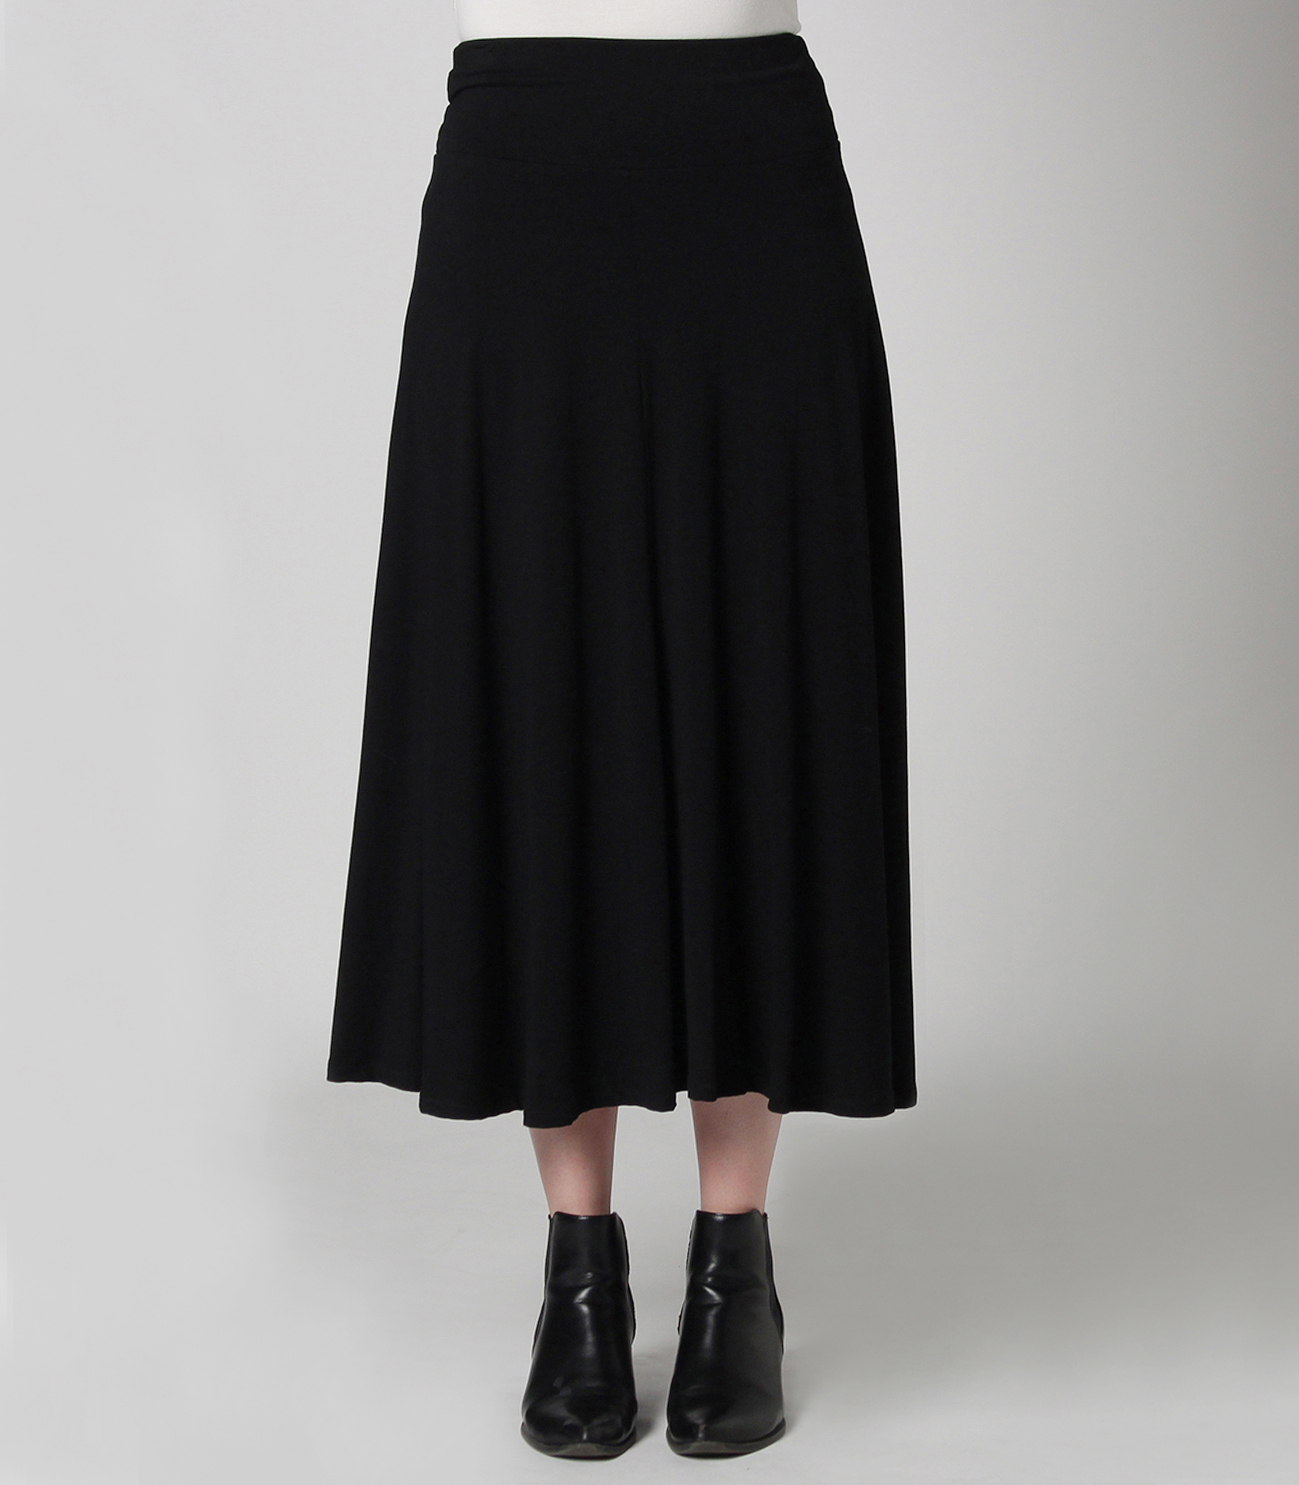 Flower print long skirt 詳細画像 black 2